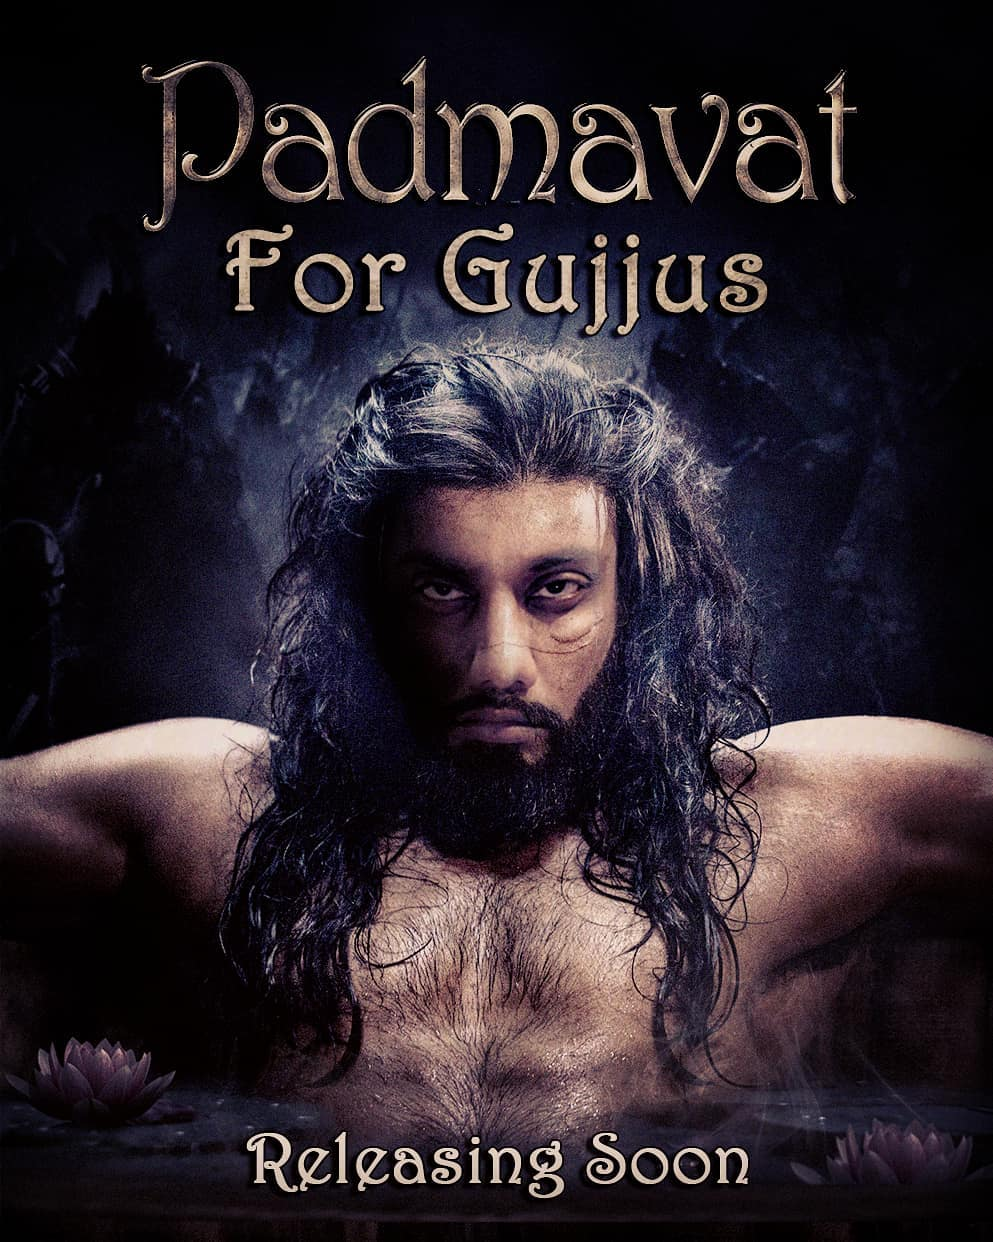 Don't worry. I am Insured.  Shout-out to my man @nasirshaikh571.ns For kick-ass editing skills.  #Gujju #Review #Padmavat